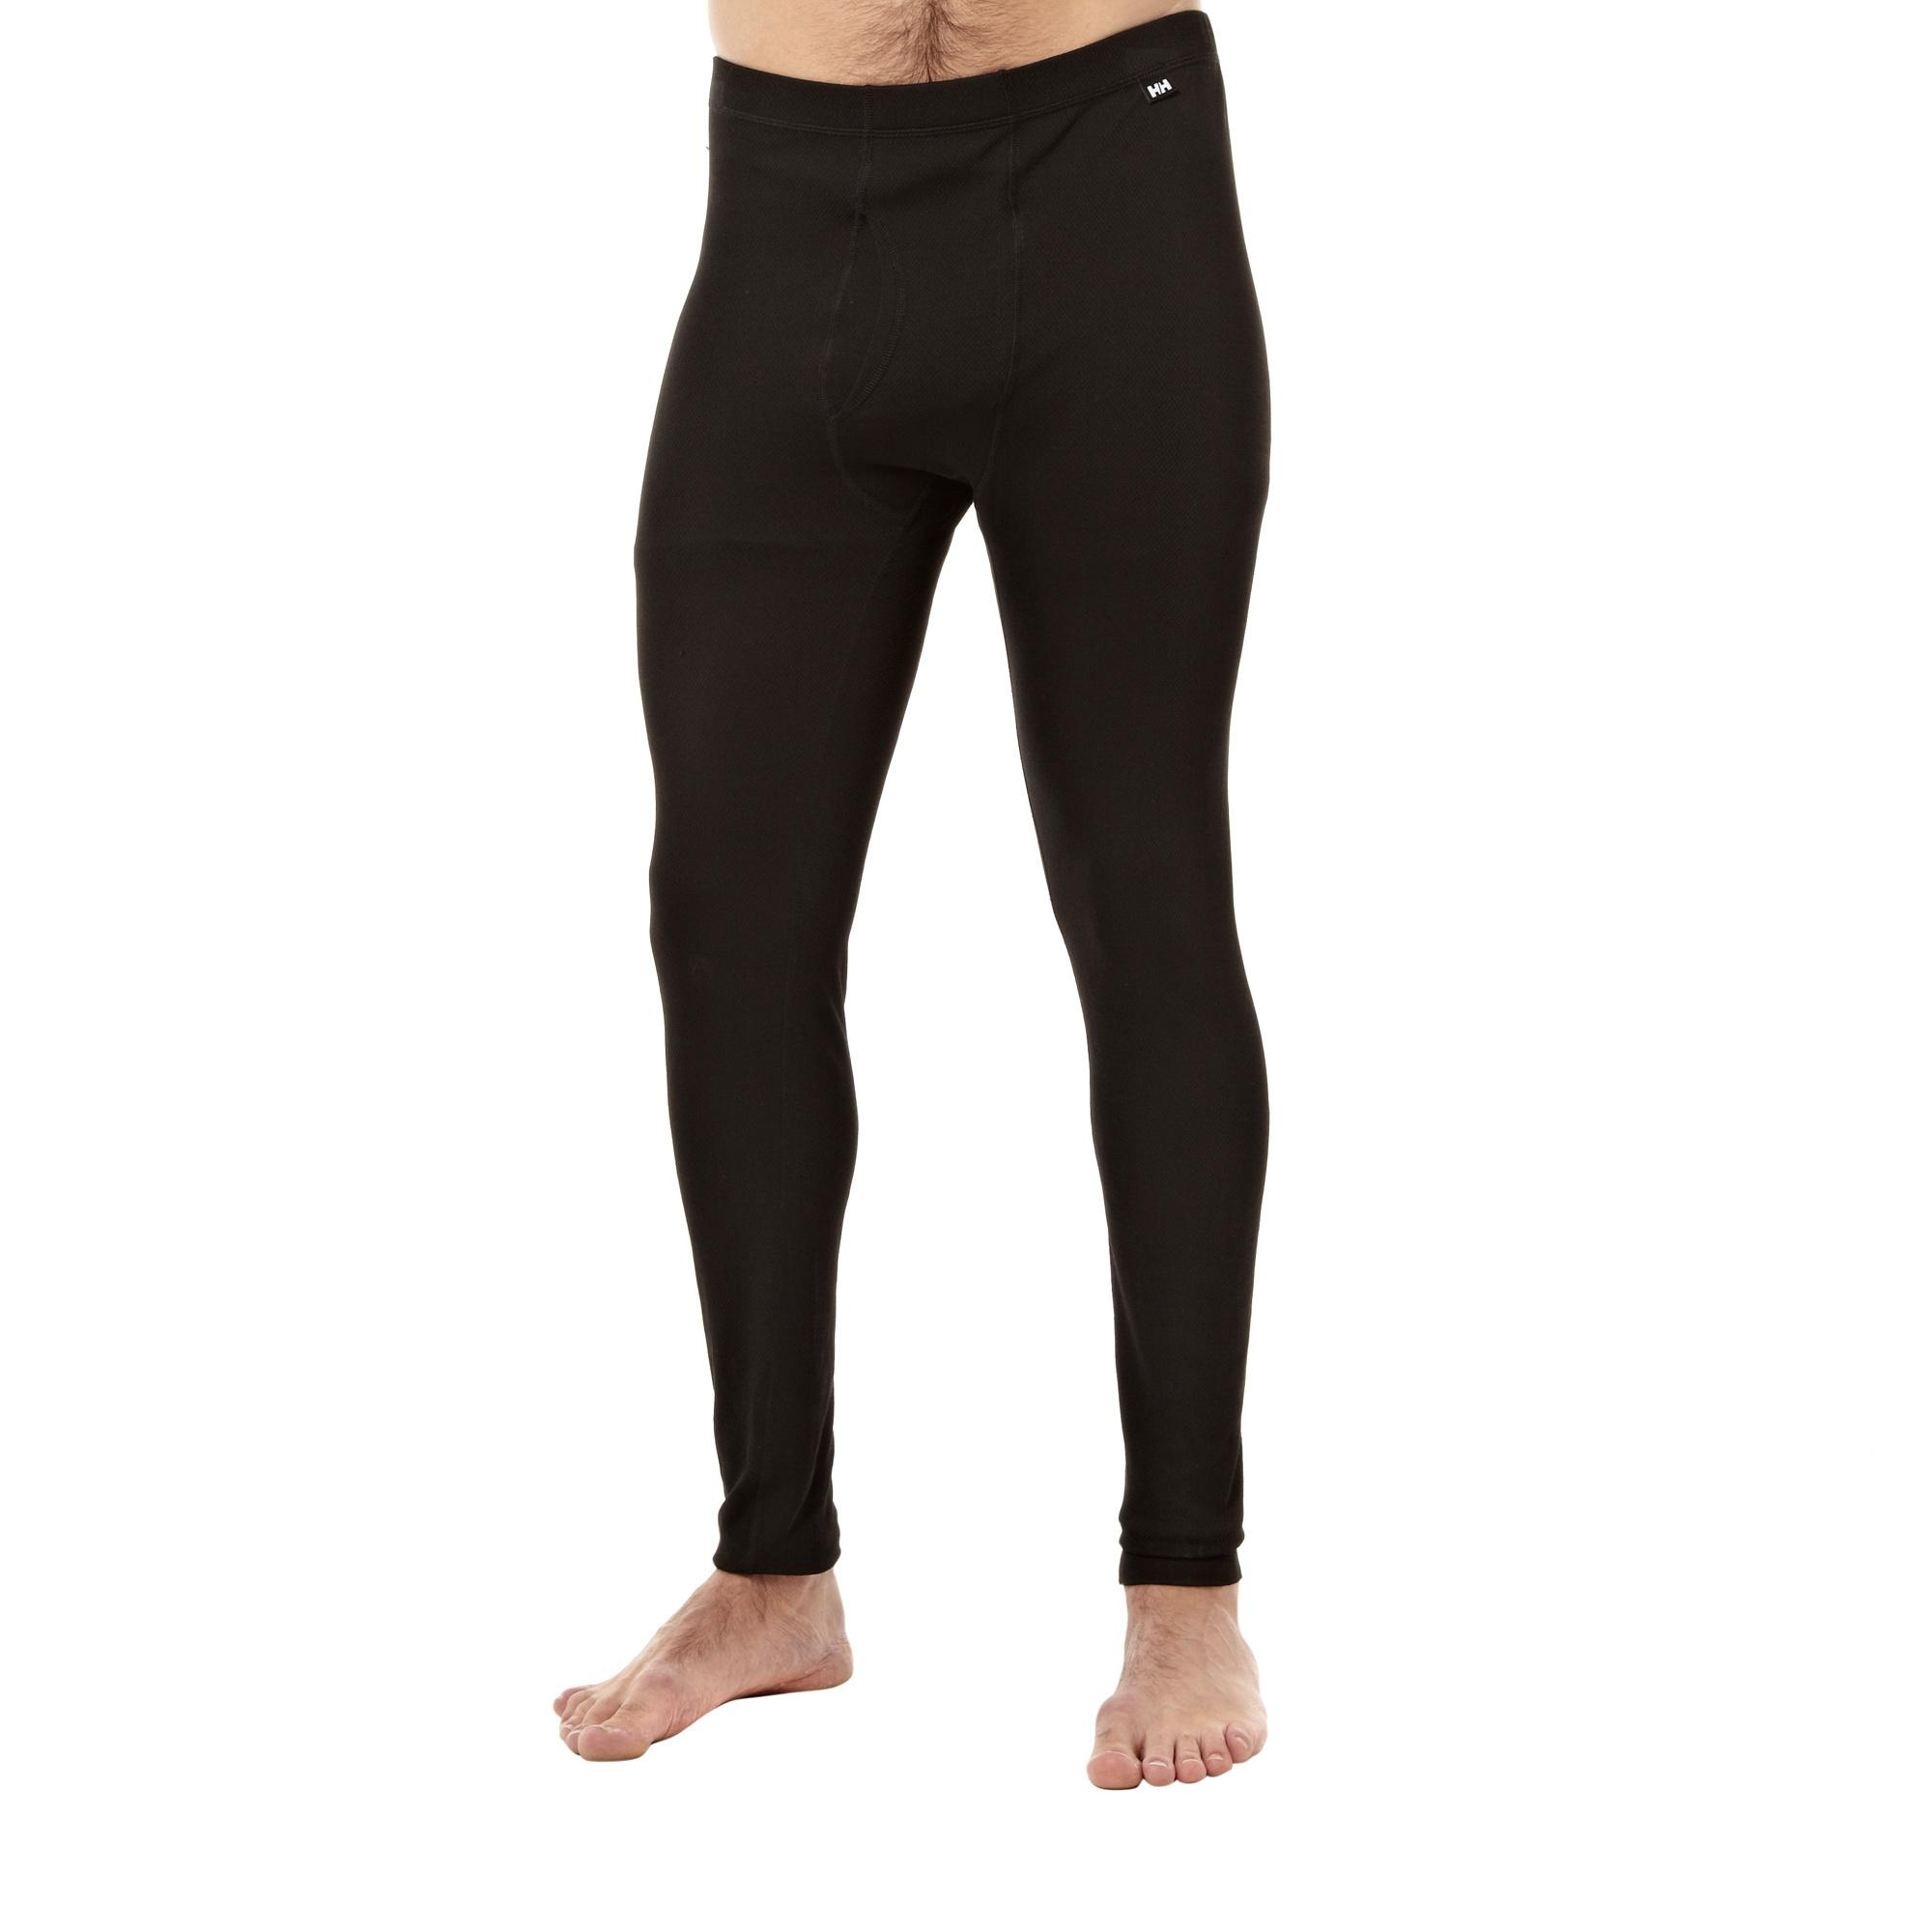 Helly Hansen Men's Dry Fly Base Layer Bottoms, Black